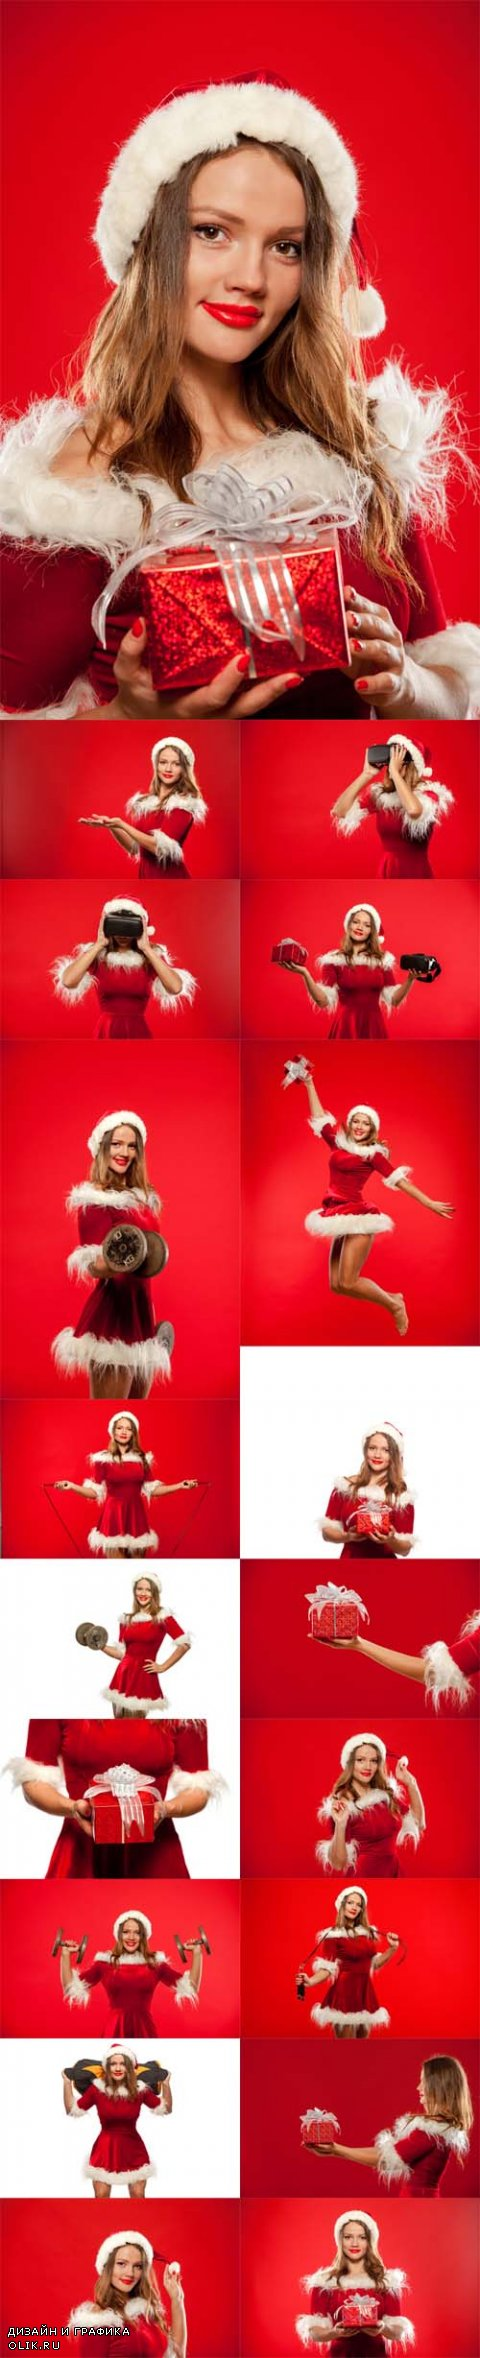 Photo Christmas, x-mas, winter, happiness concept woman in santa helper